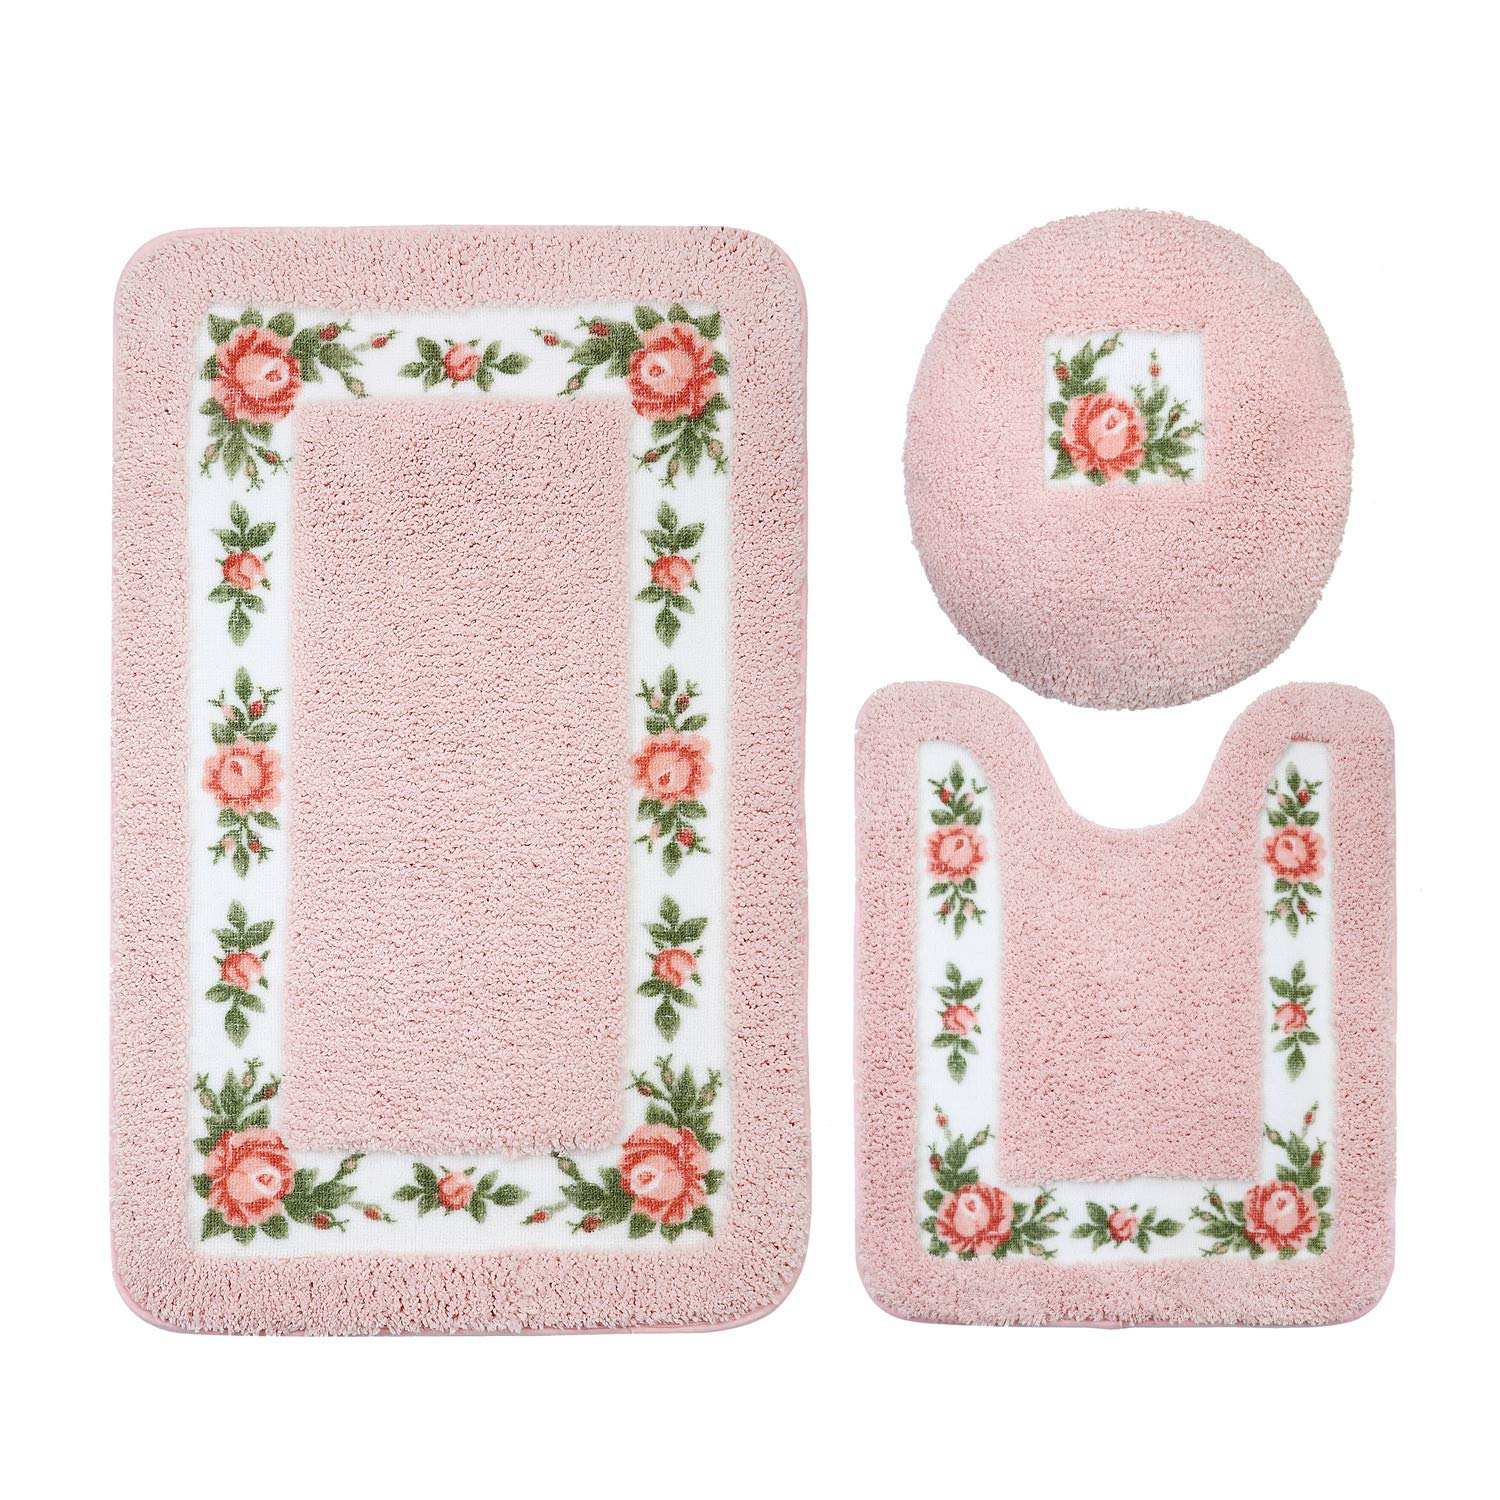 JSJ_CHENG Non-Slip Pink Rose Floral Bathroom Toilet Shower Bath Rugs and Mats Set of 3pcs Rectangular 19.6'' x 31.4'' + U Shape 19.6'' x 23.6'' + lid Cover